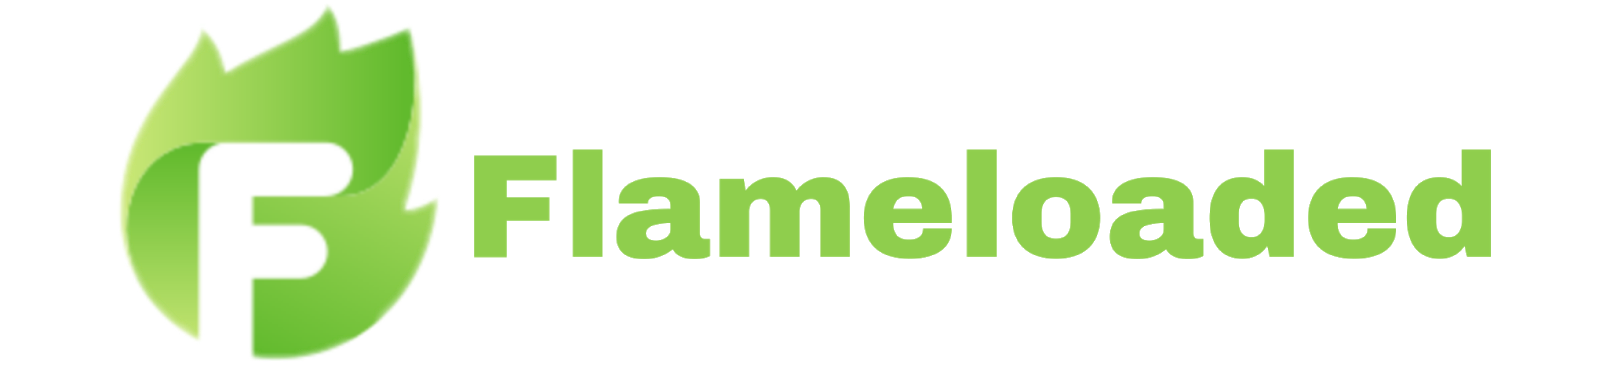 Flameloaded | Nigerian entertainment and technology website